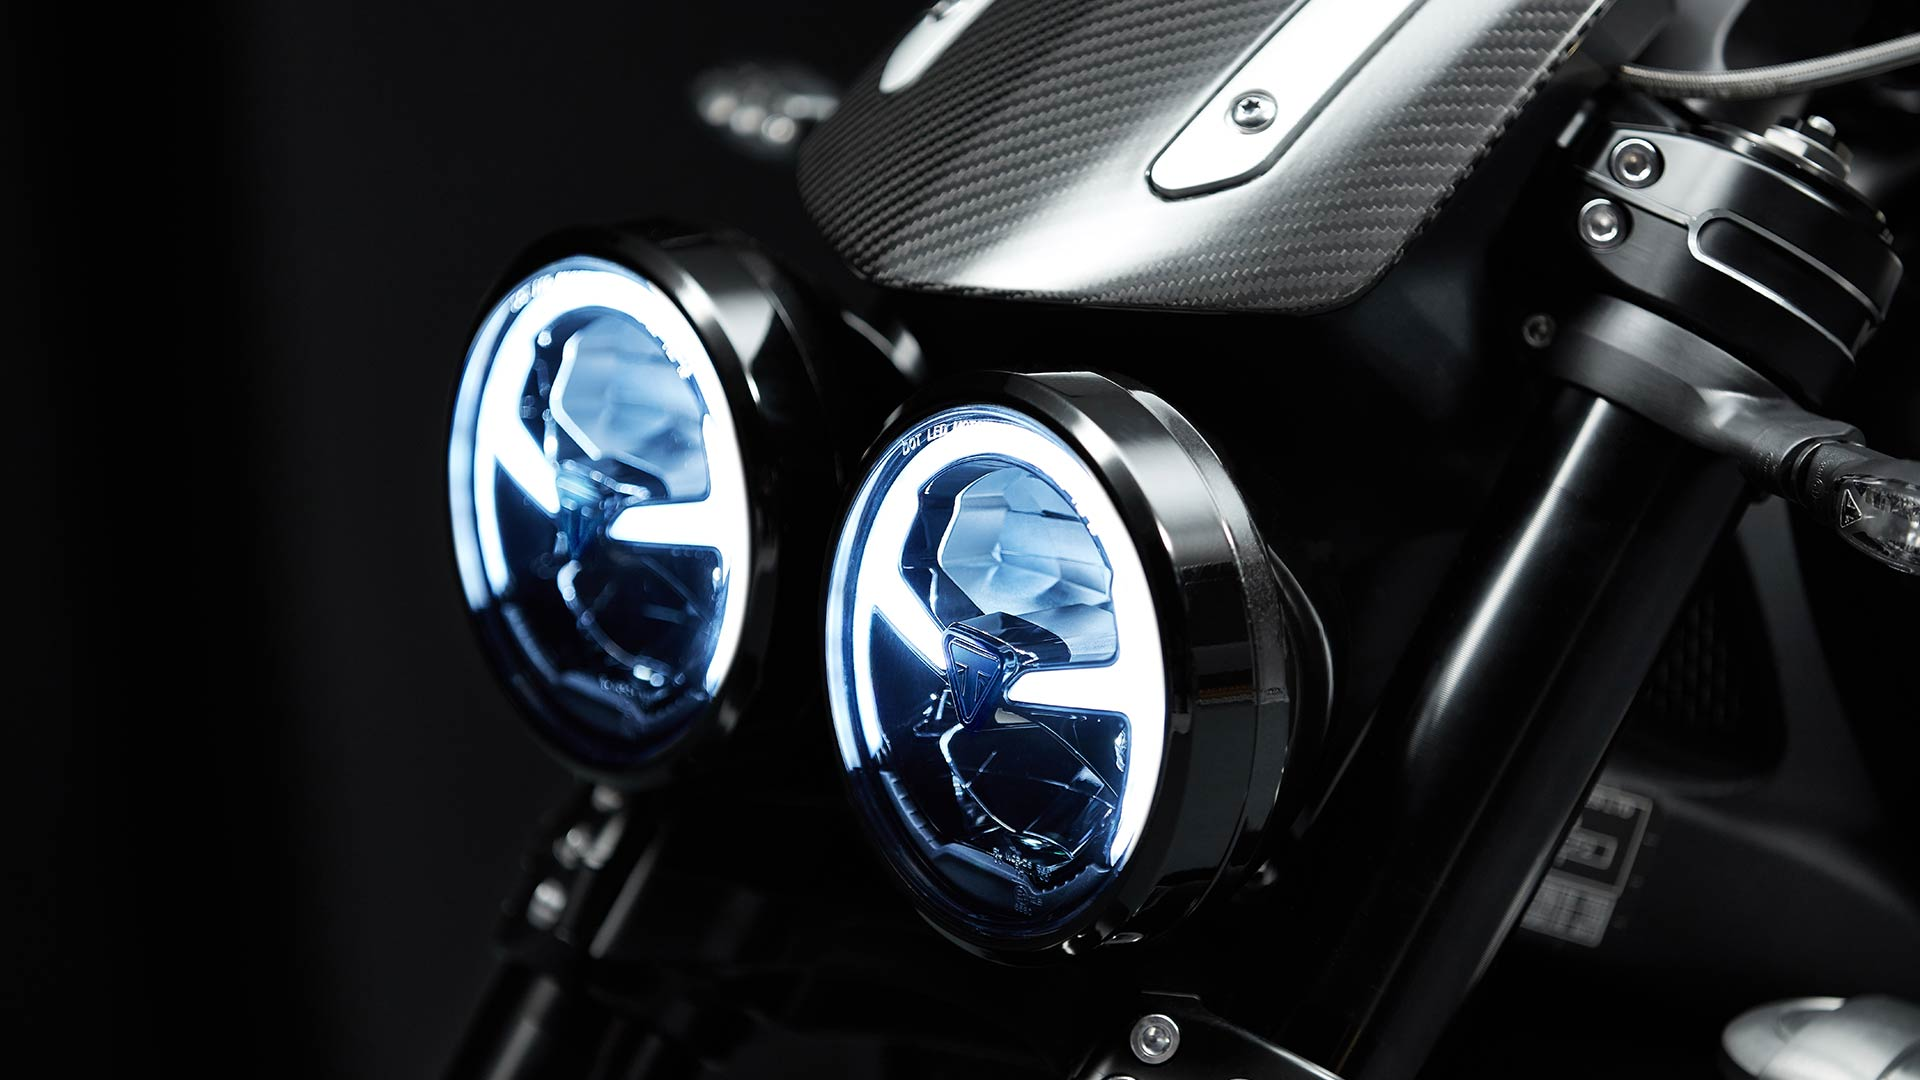 Triumph Rocket 3 TFC LED DRL headlights